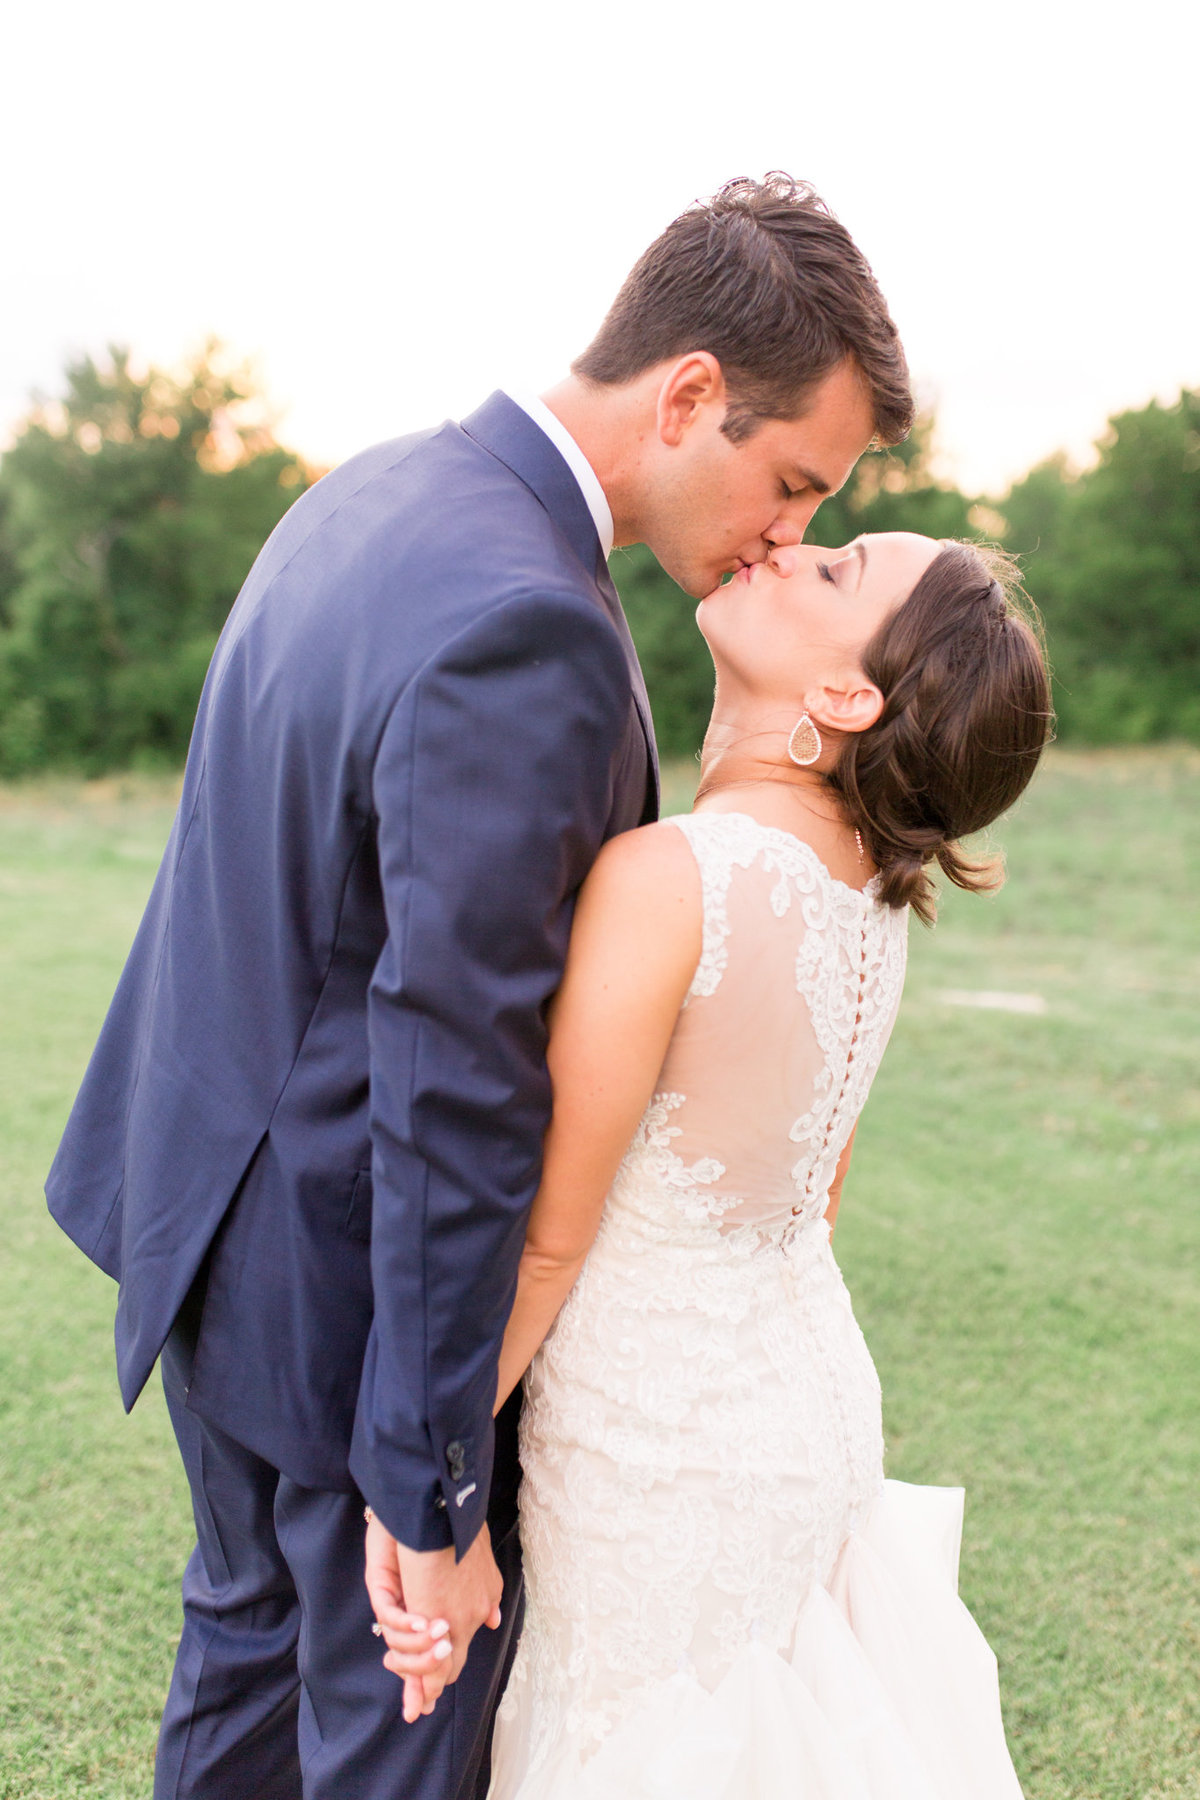 Grand Ivory Wedding| Dallas, Texas | DFW Wedding Photographer | Sami Kathryn Photography-128